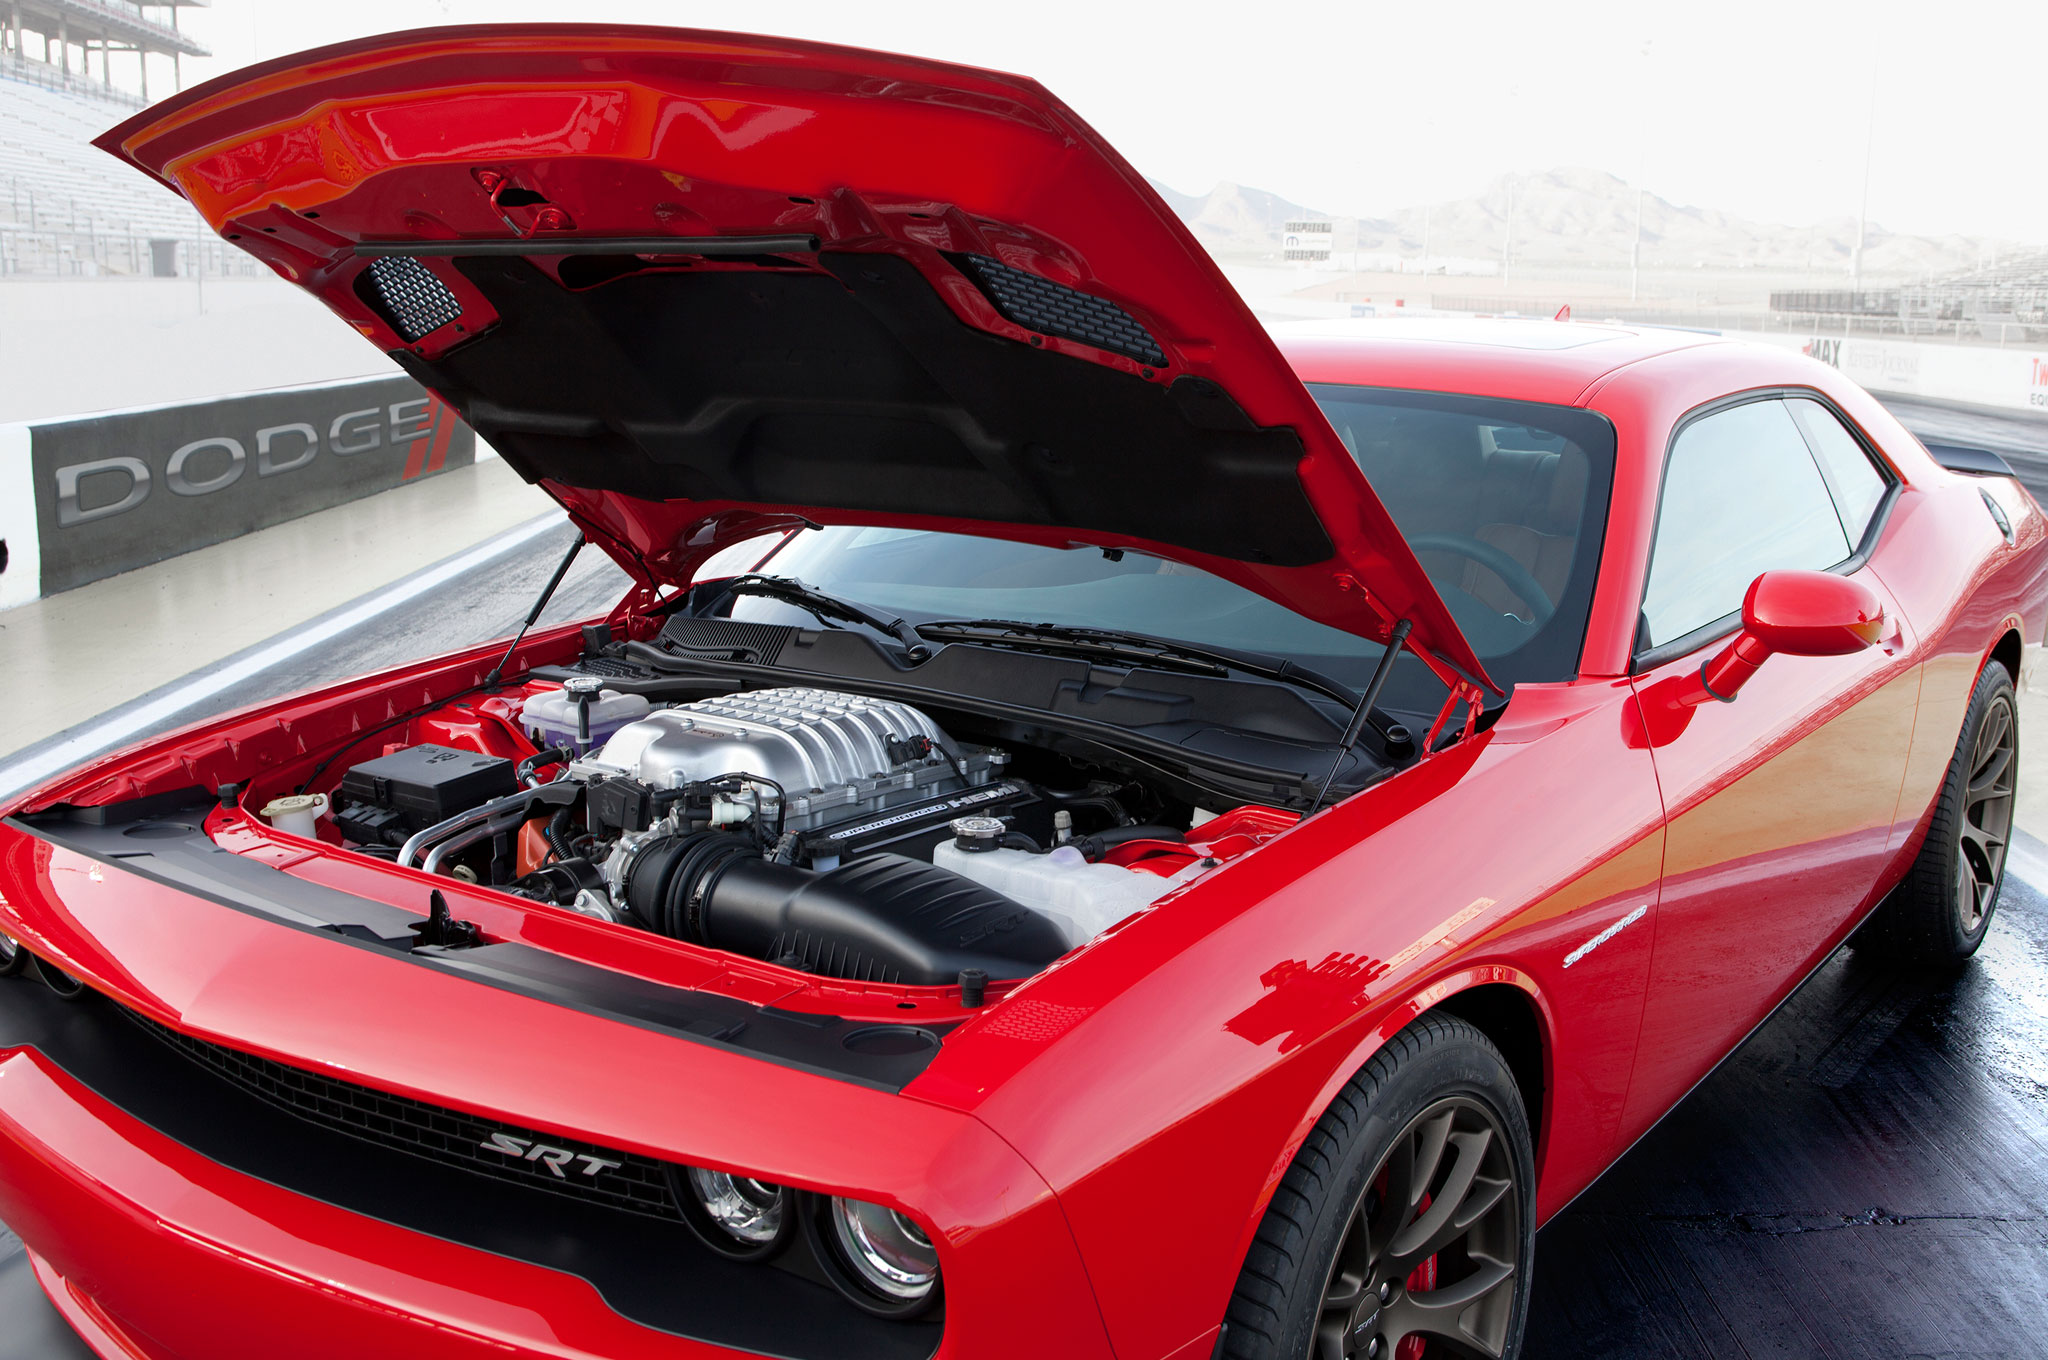 2015 Dodge Challenger SRT Hellcat Makes 707 HP